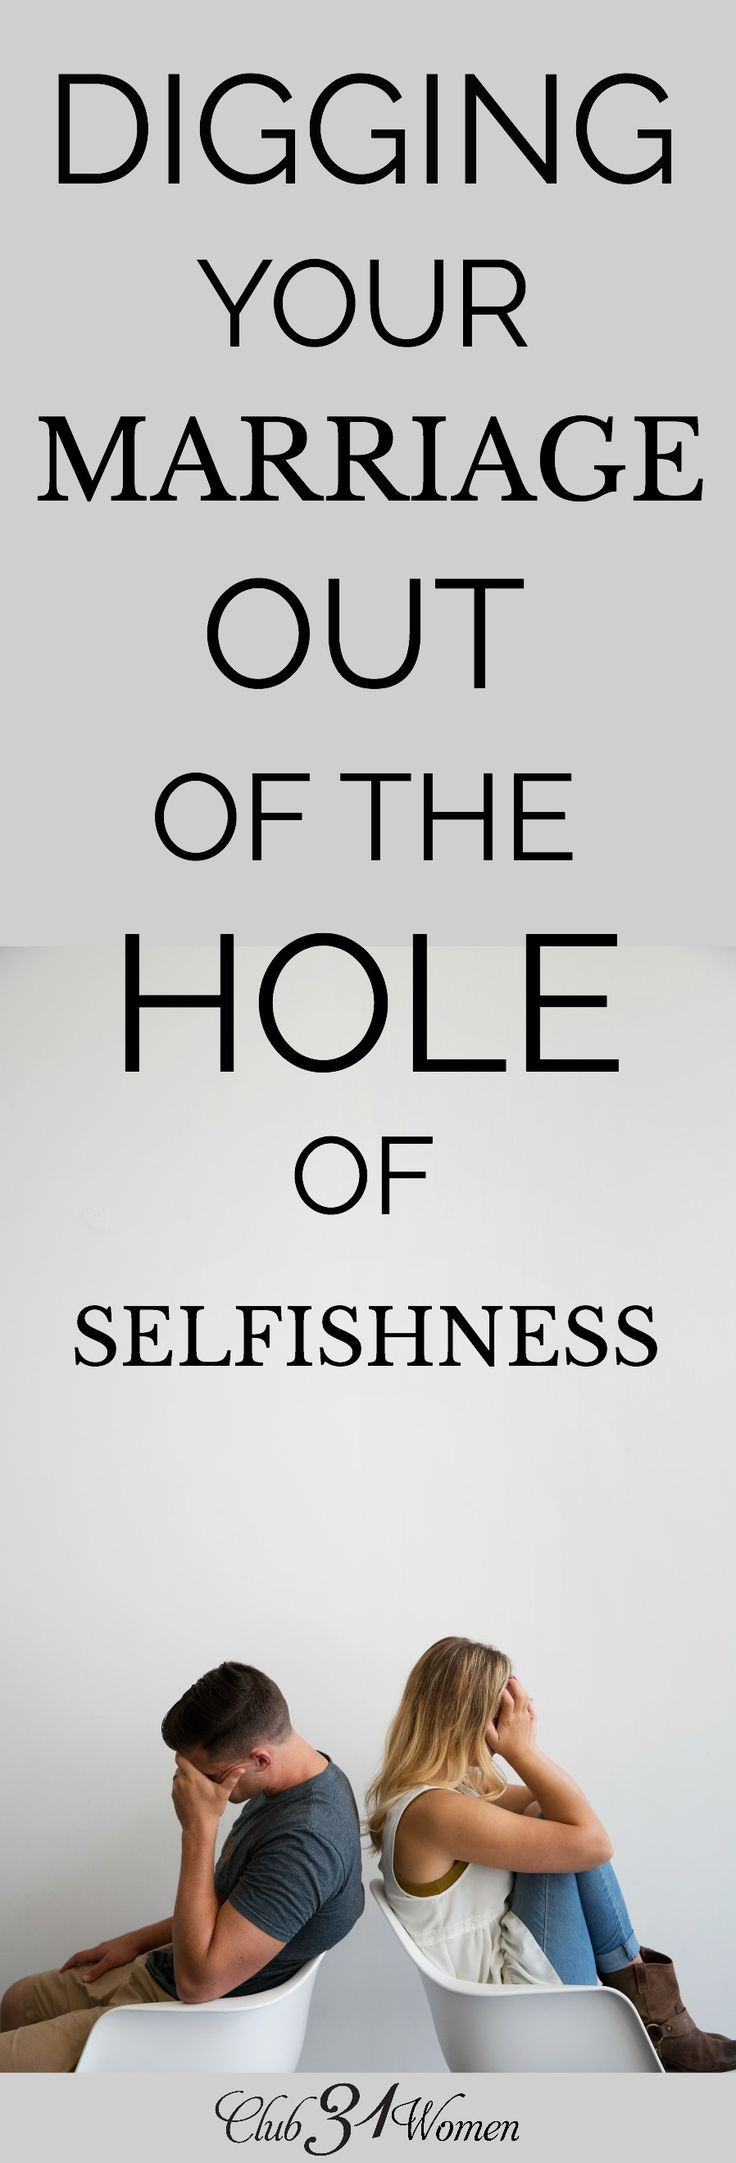 Digging Your Marriage Out of The Hole of Selfishness